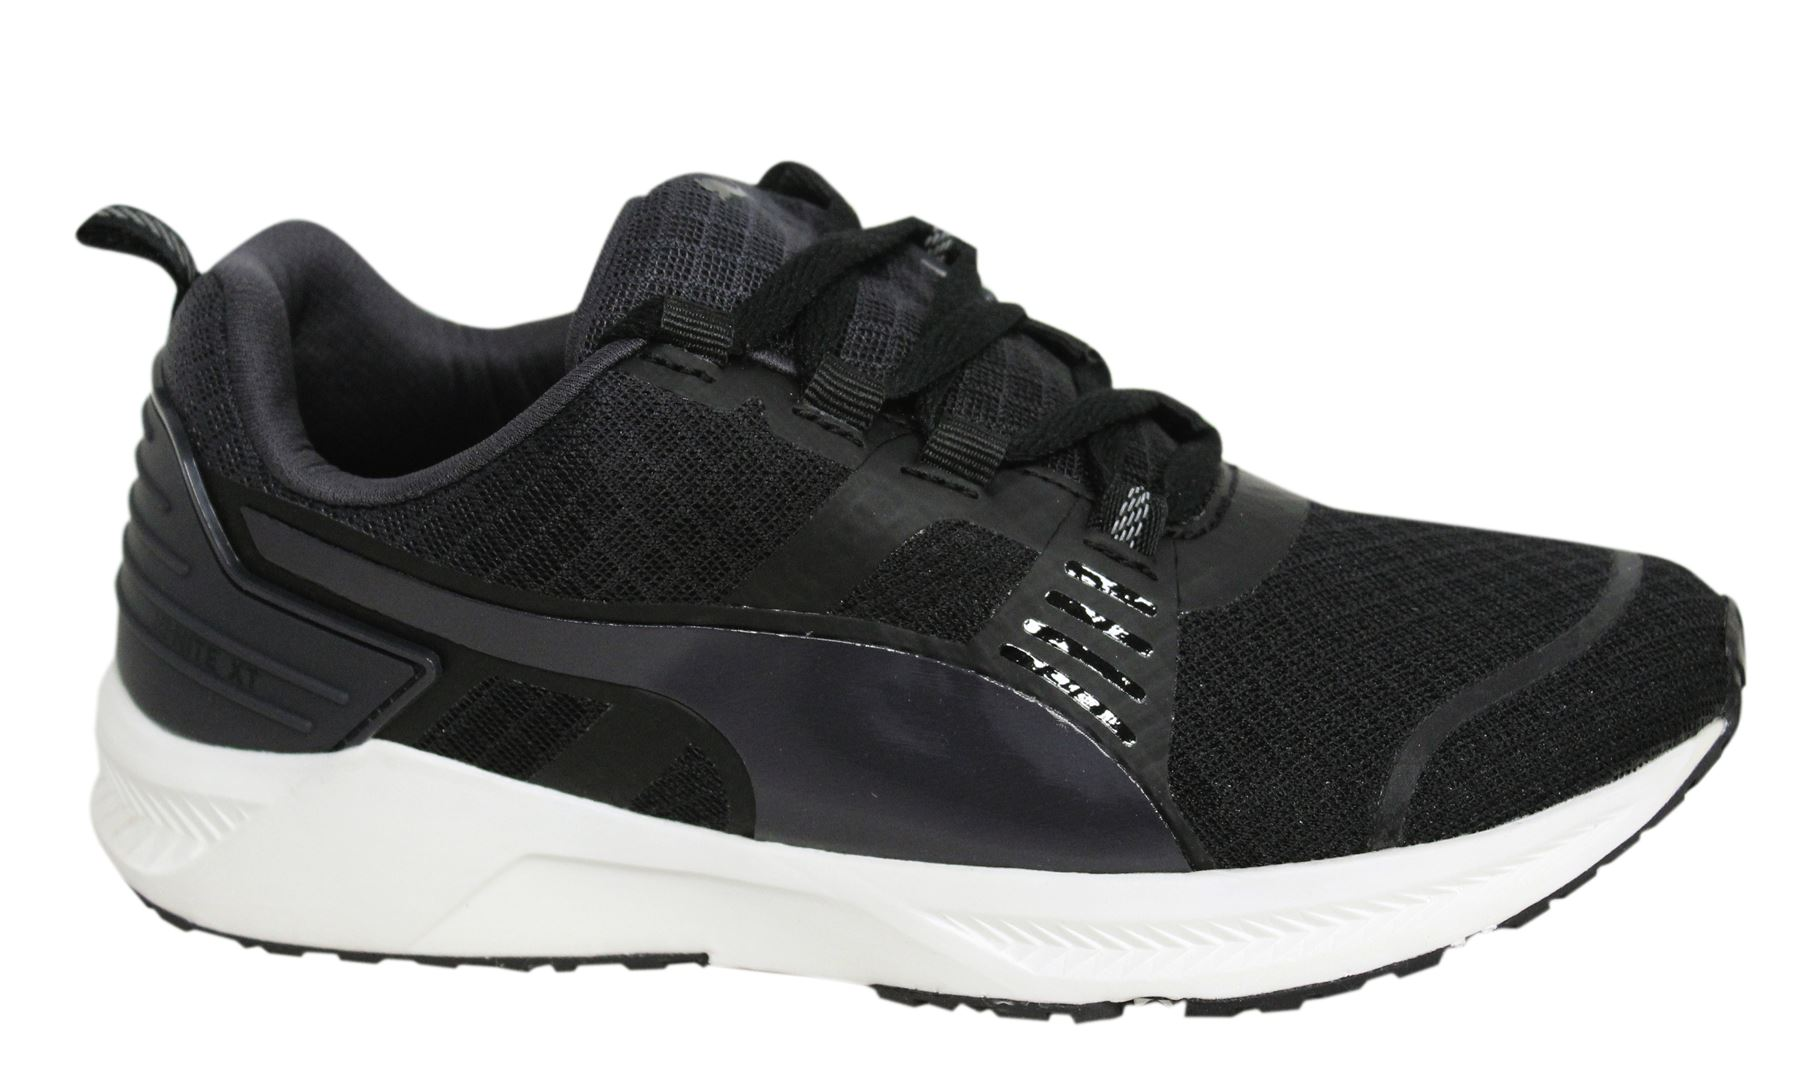 Puma Ignite XT v2 Lace Up Black Textile Womens Trainers 188985 03 ... 226075c13c